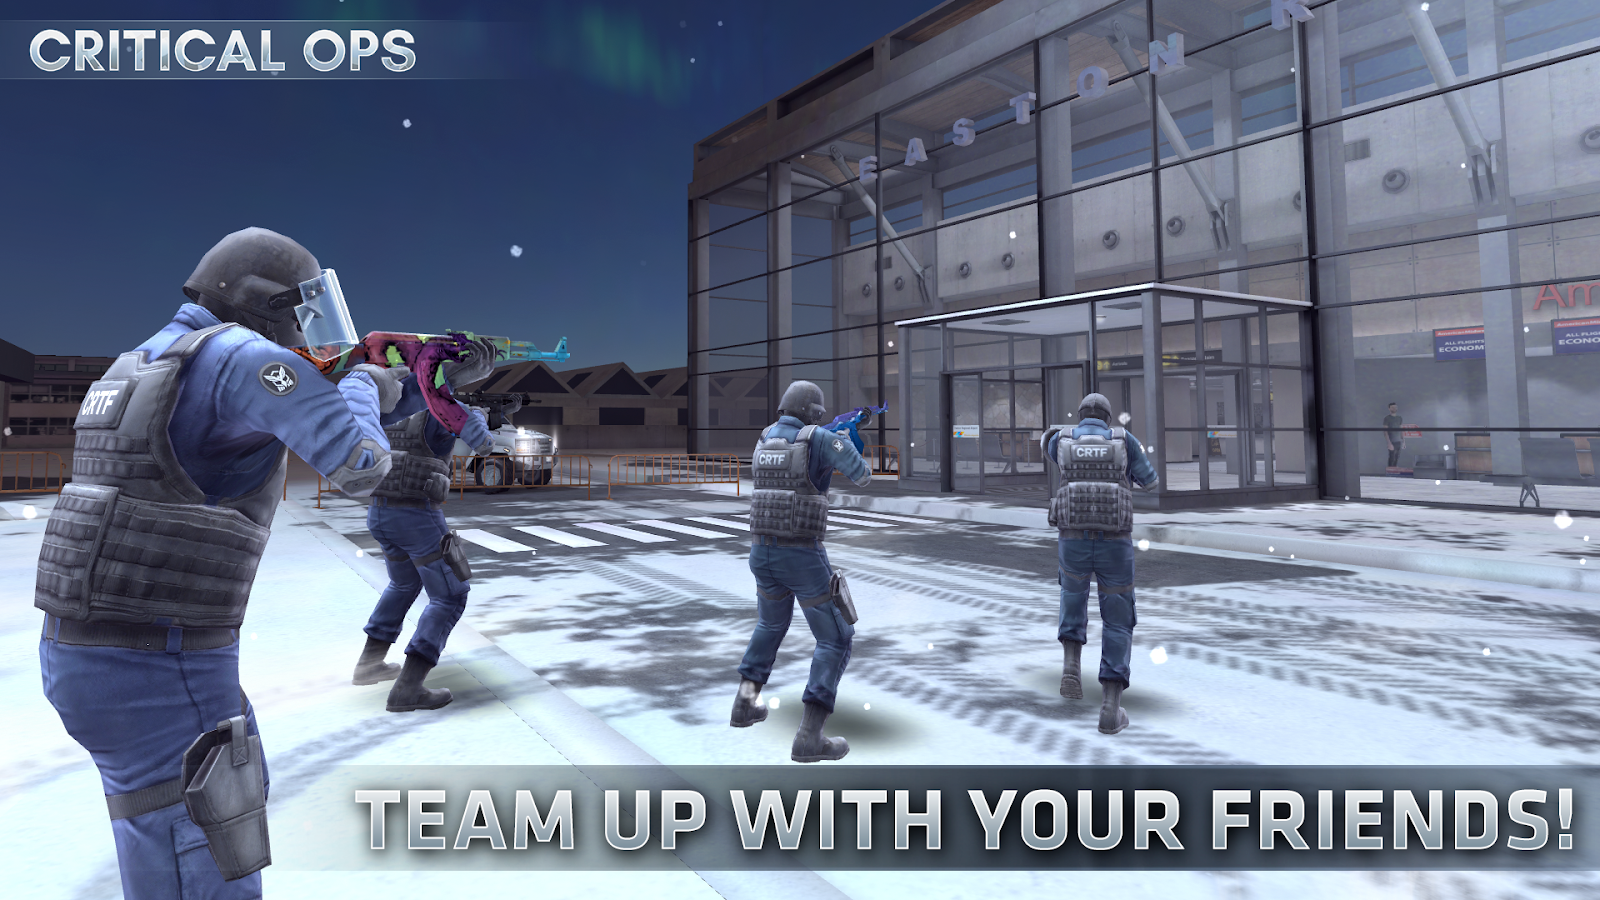 Critical Ops 1 9 0 f791 APK + OBB (Data File) Download